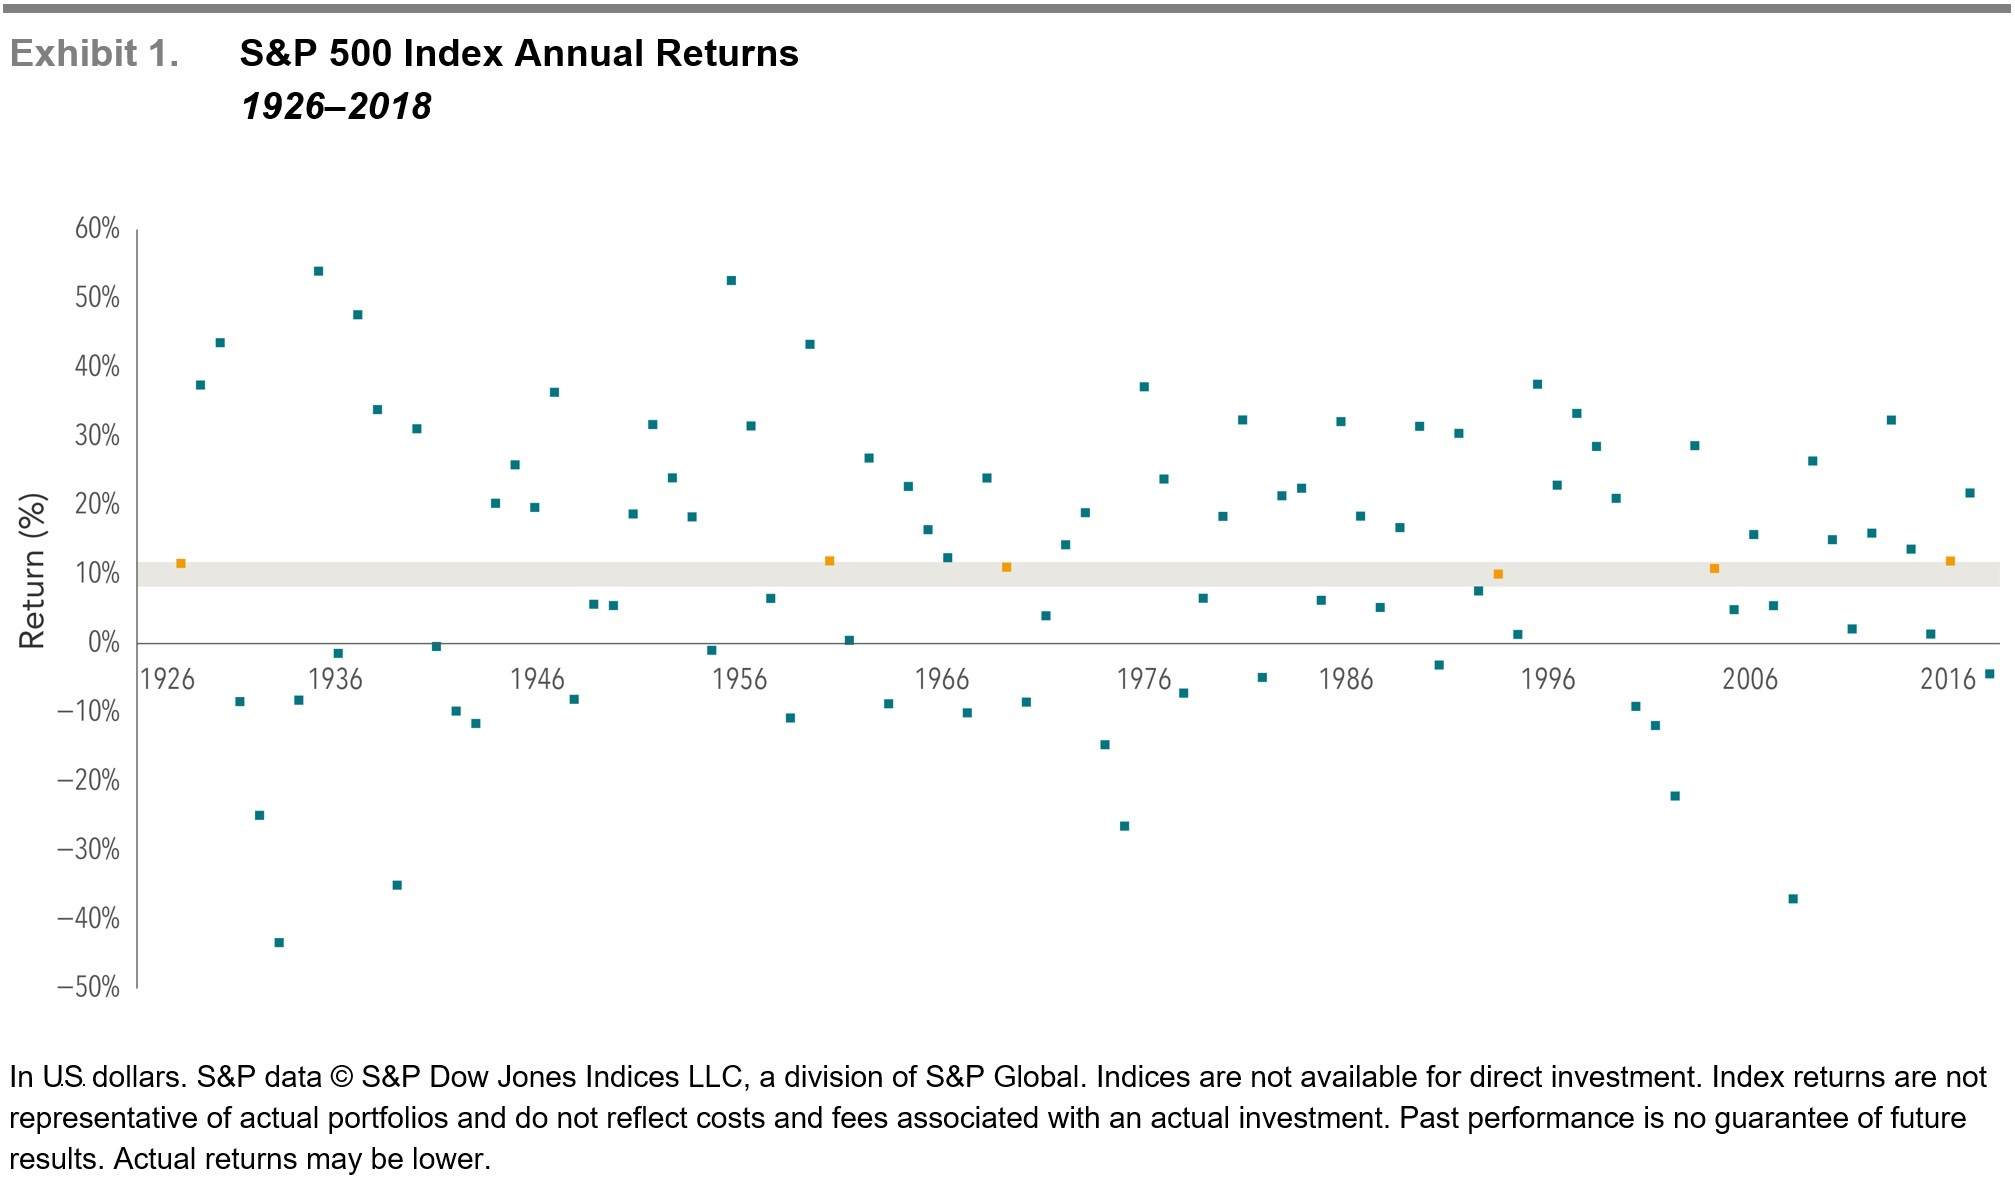 Uncommon Average S&P 500 Index Annual Returns 1926-2018